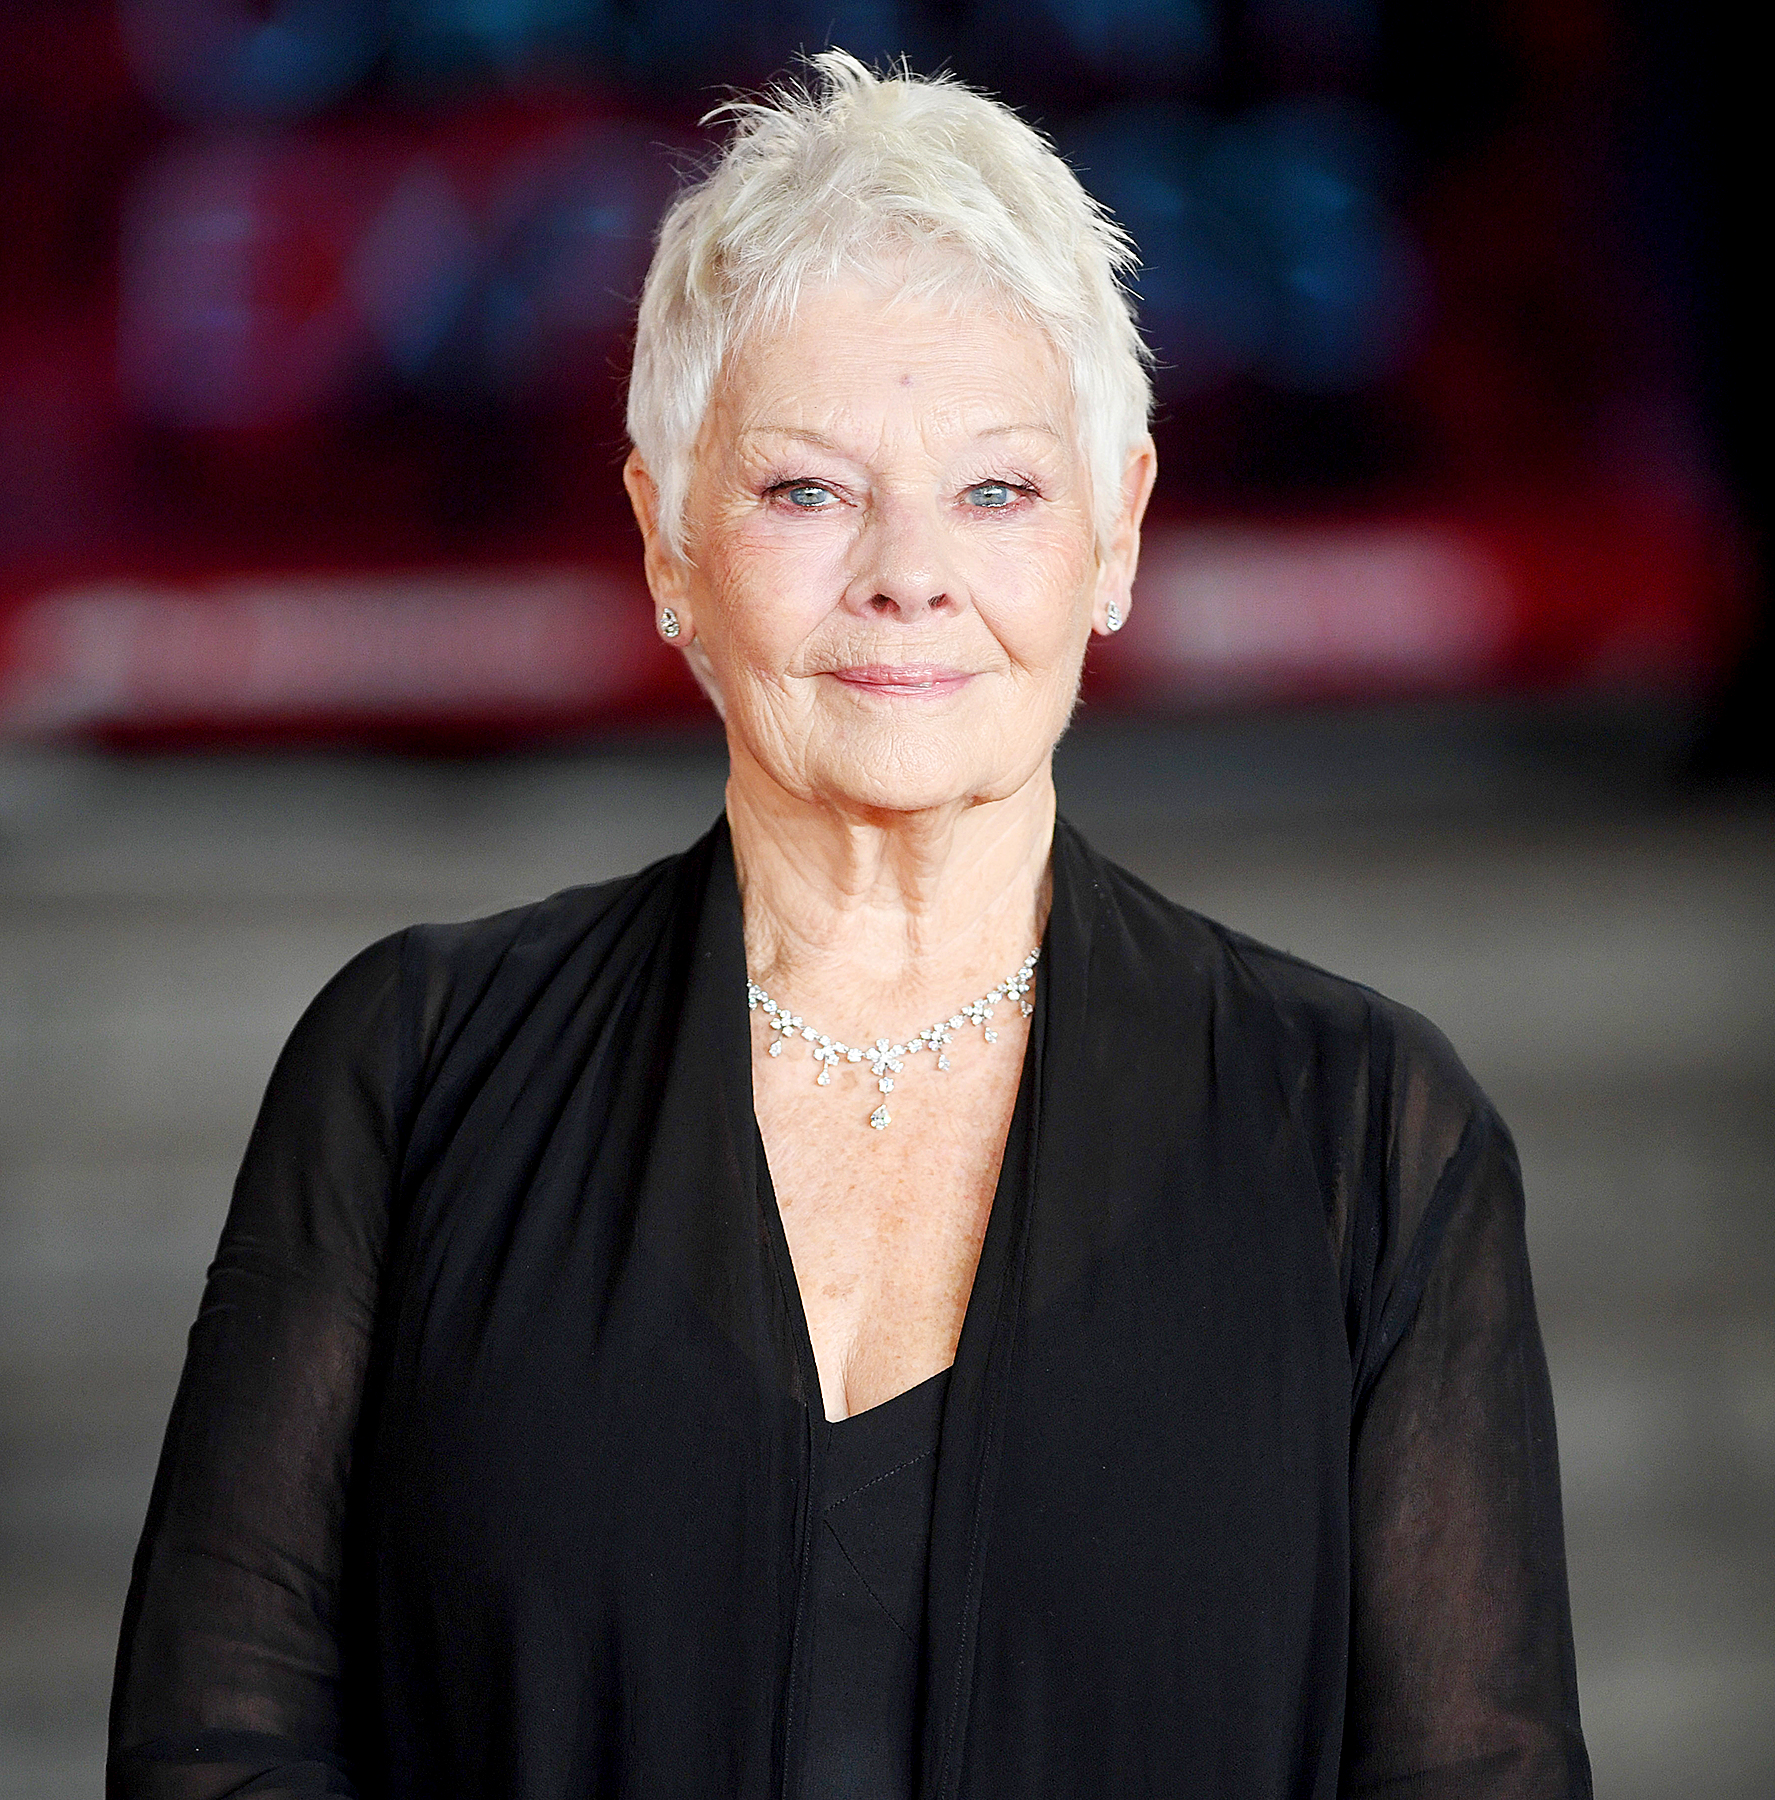 SAG Awards 2018 Typo Has Judi Dench Nominated for 'Leading Roll,' Leaving Viewers in Stitches